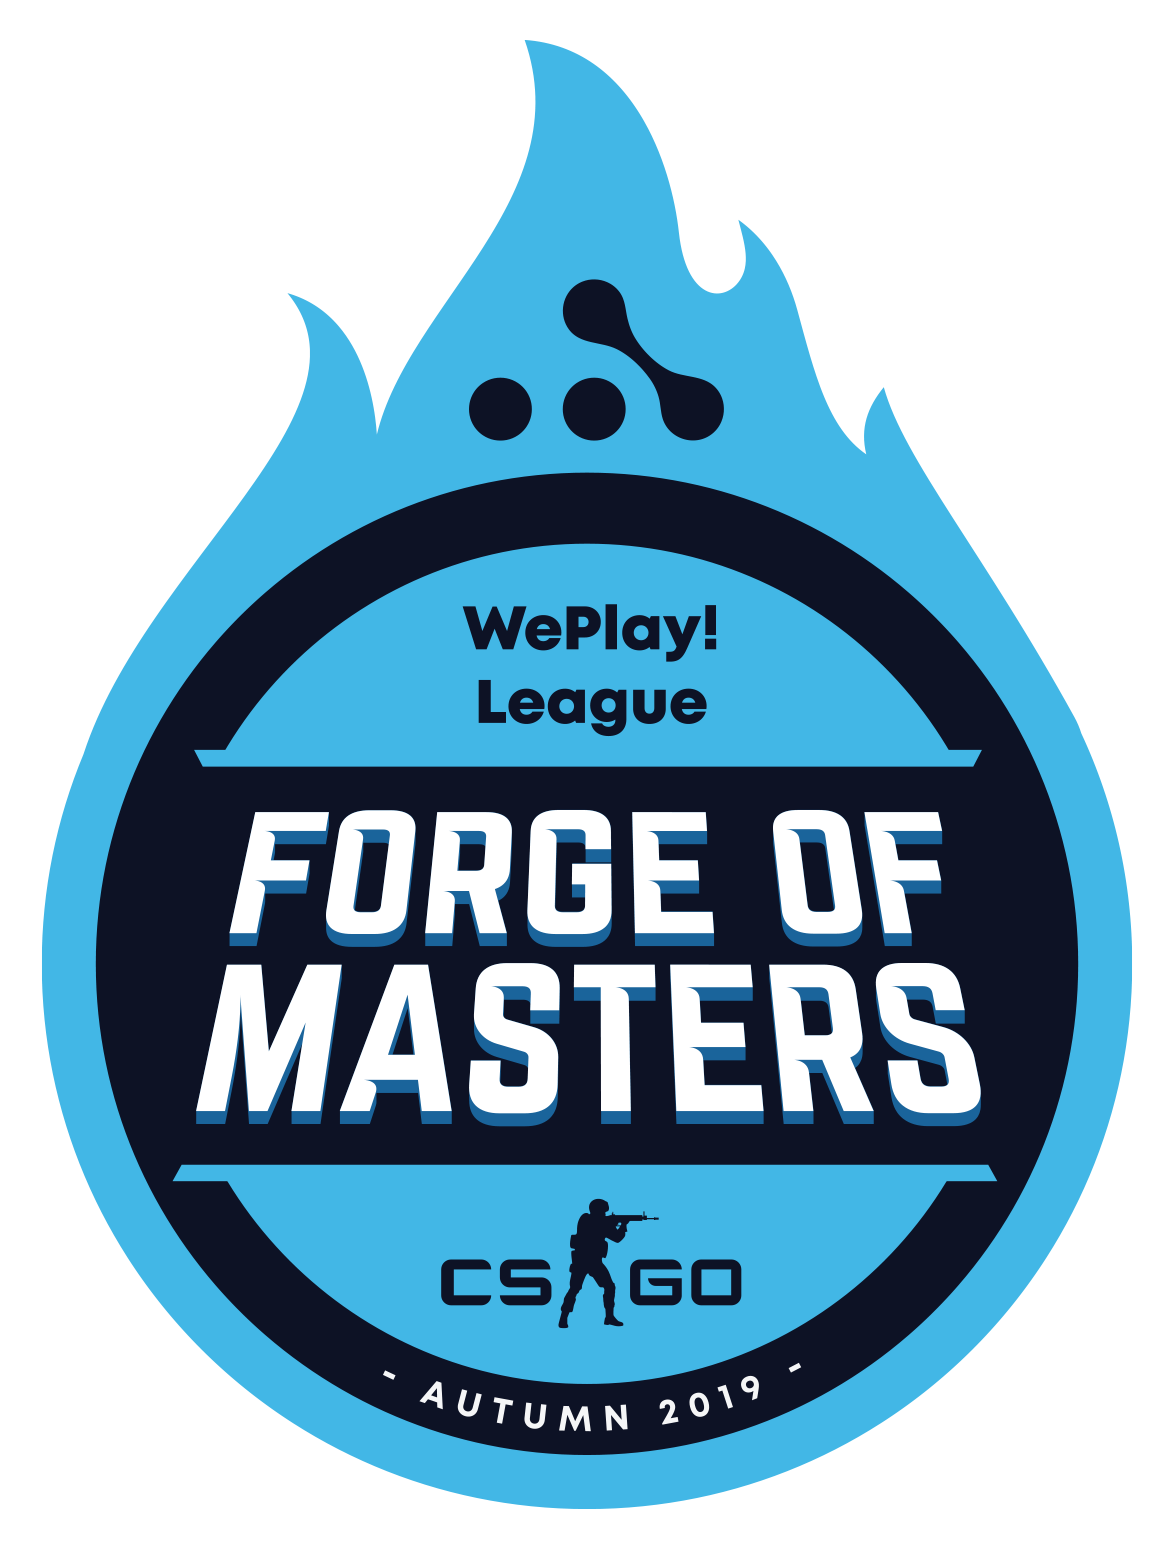 Forge of Masters WePlay! Season 2 Tournament